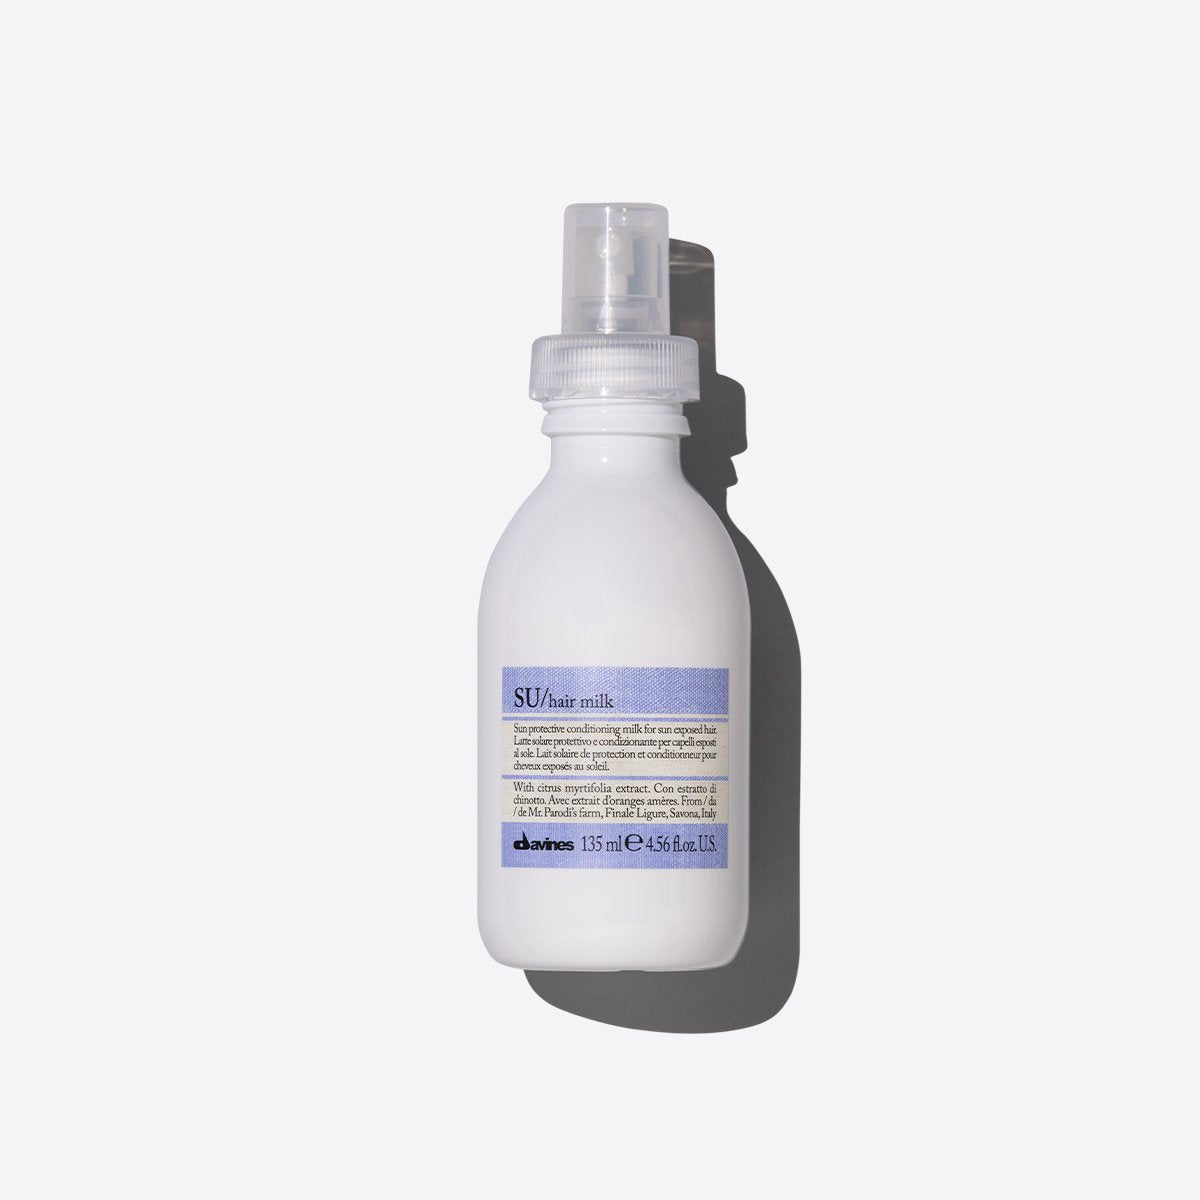 Davines SU Hair Milk - Crema en Spray para Cabello 135ml